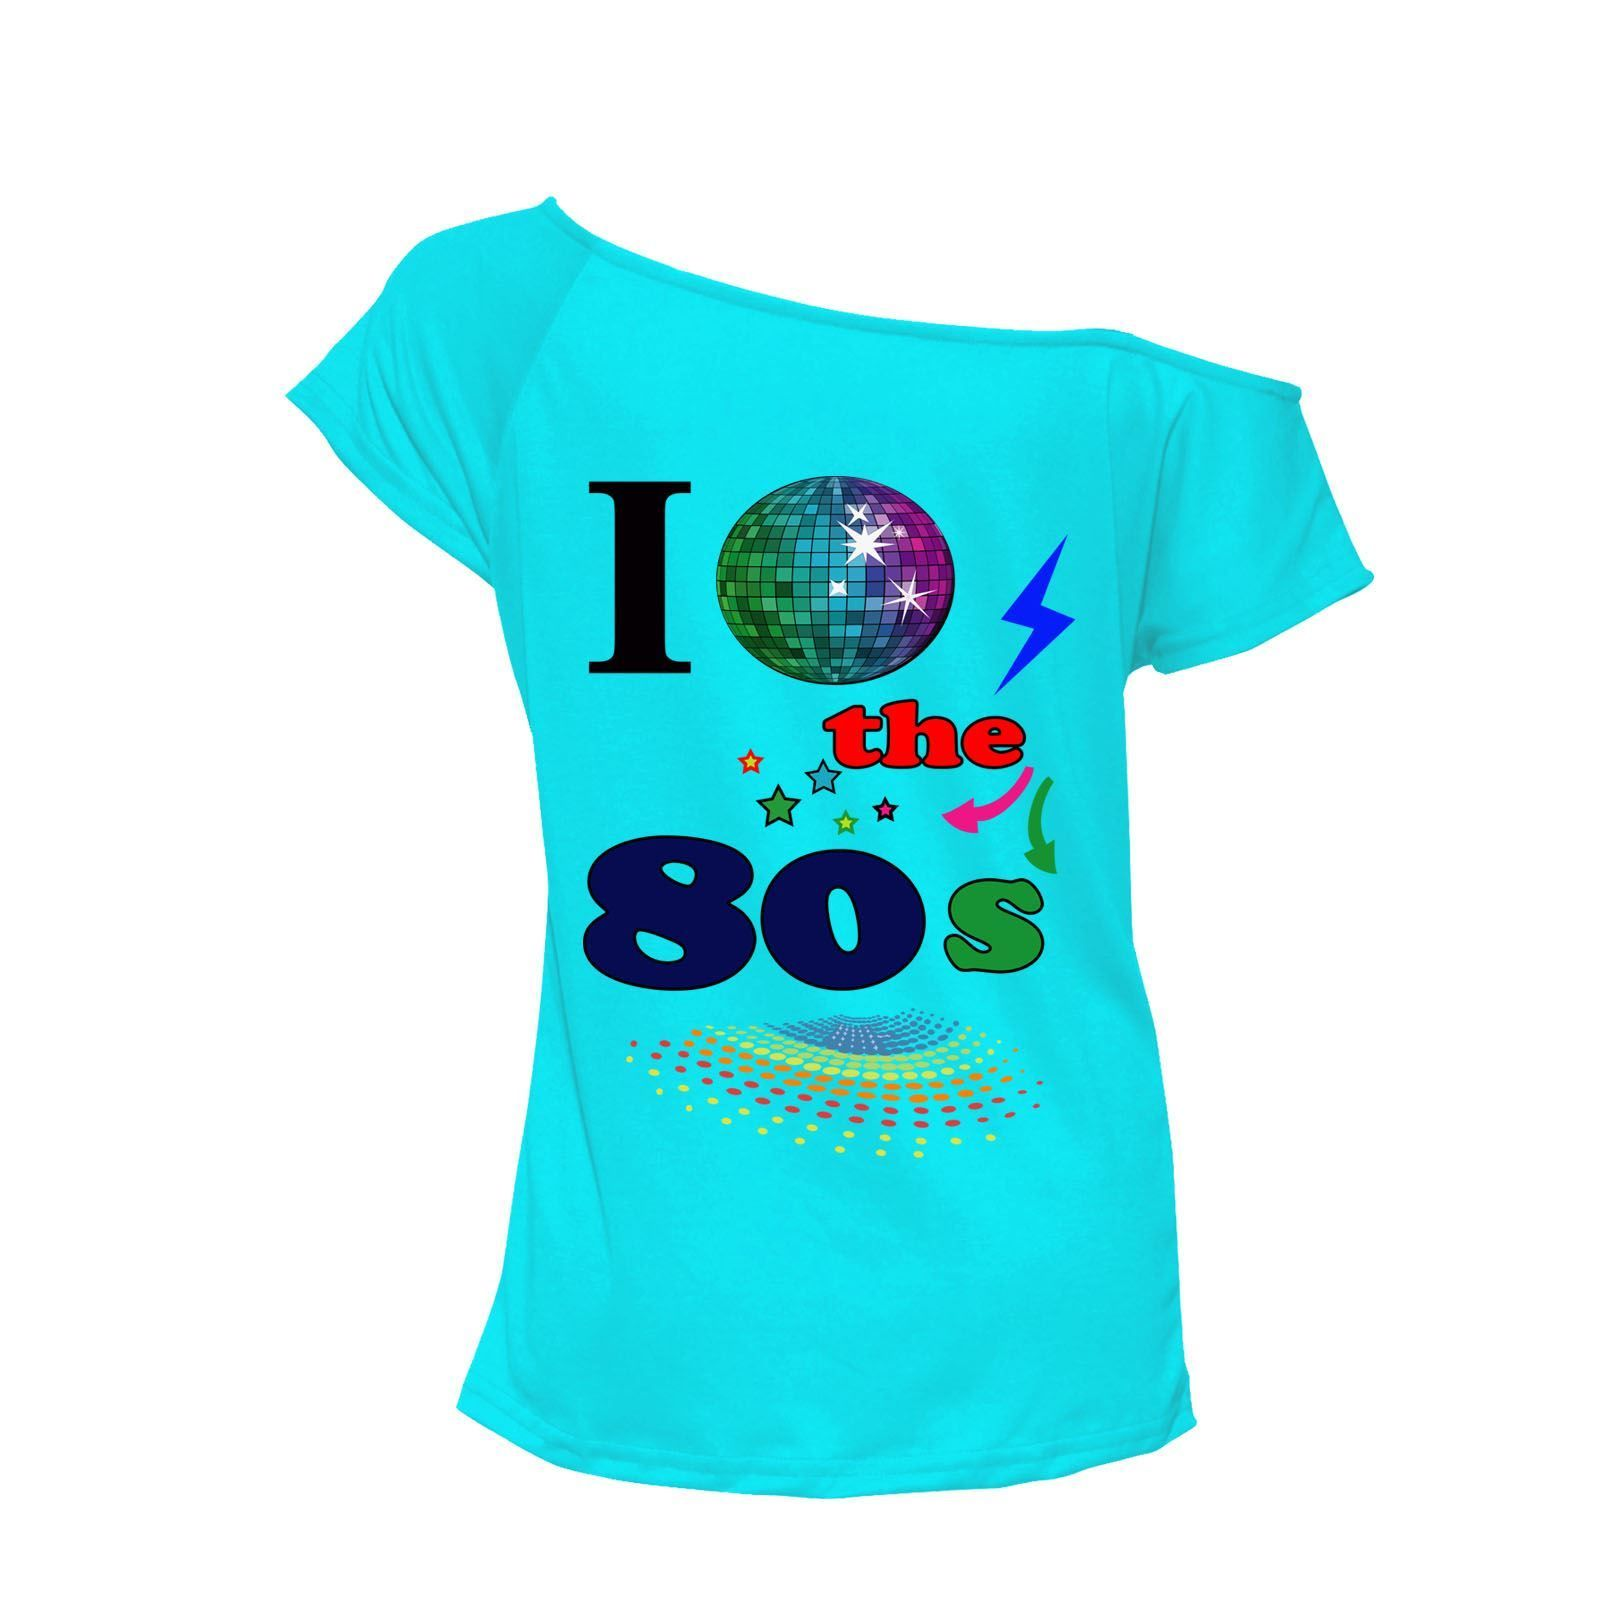 bcd6ff18fae92 I Love The 80s T-shirt Top Off Shoulder Womens Ladies Retro Fancy outfit  Lot Top Shoulder shirt